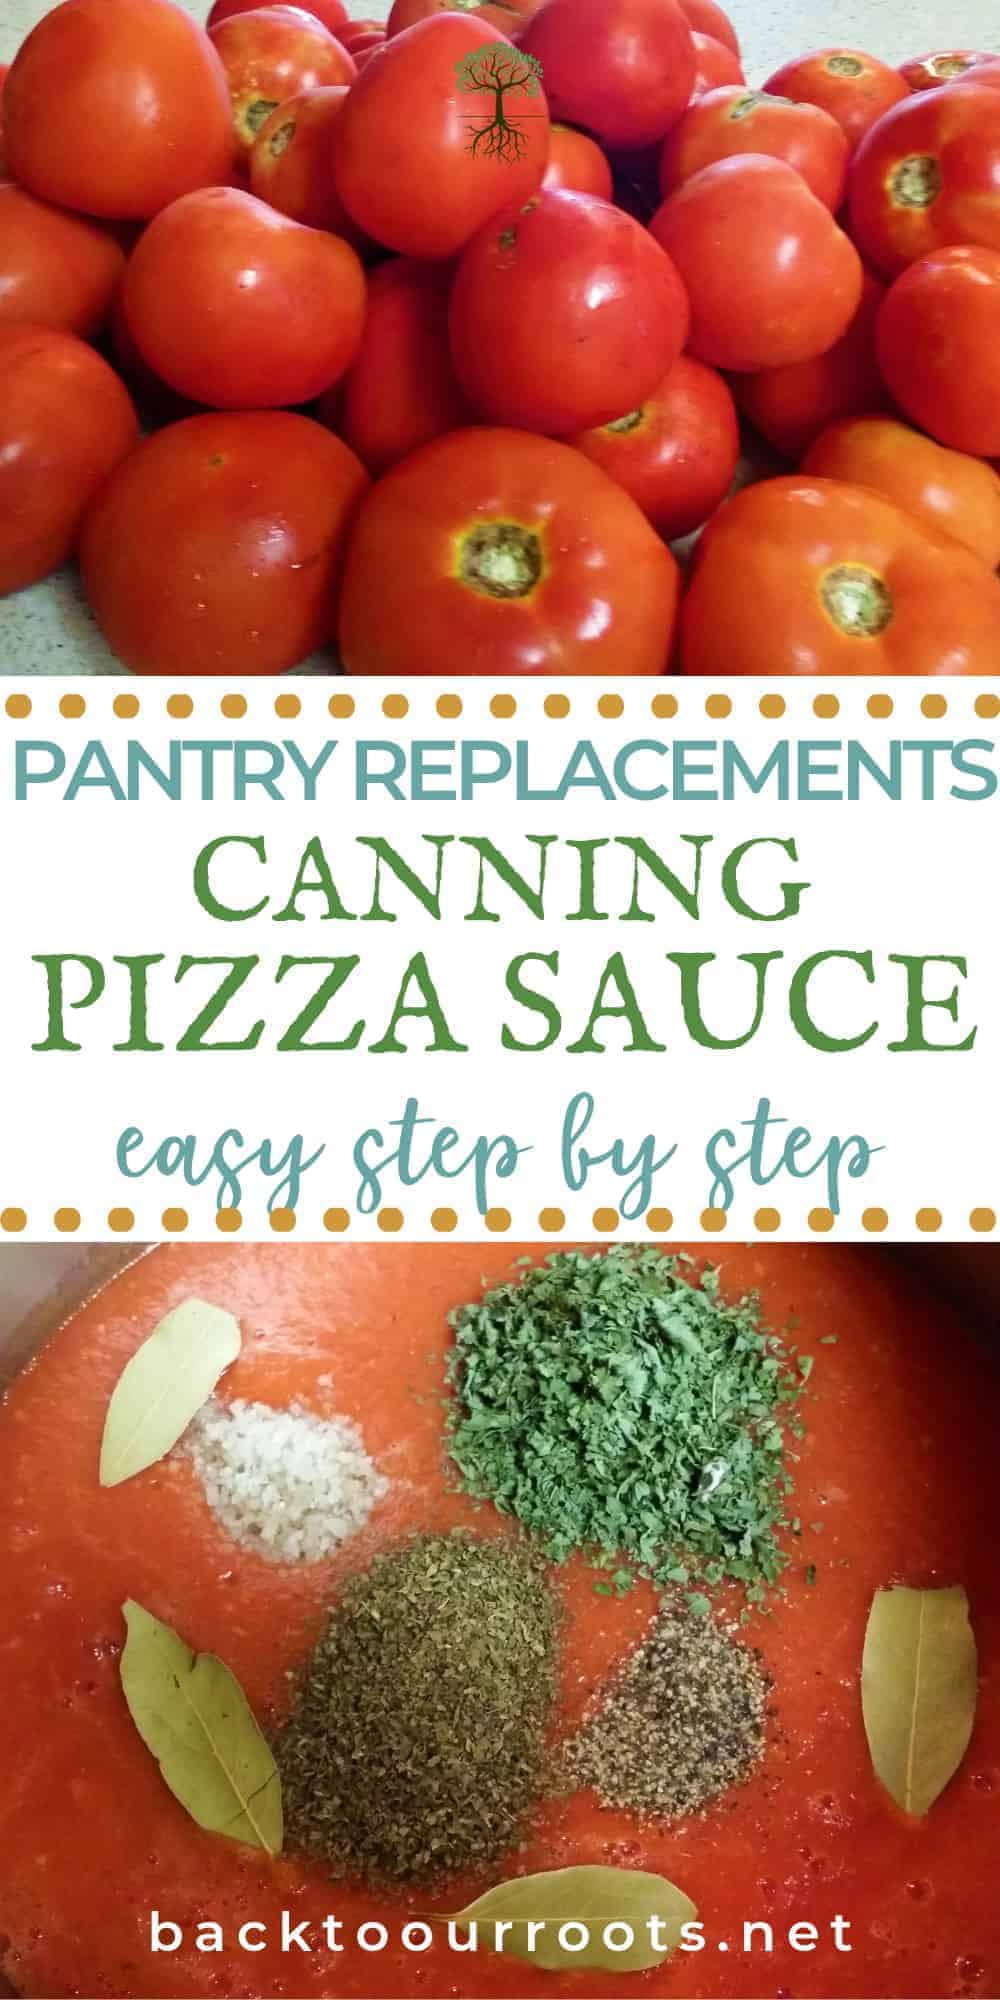 How to Can Pizza Sauce